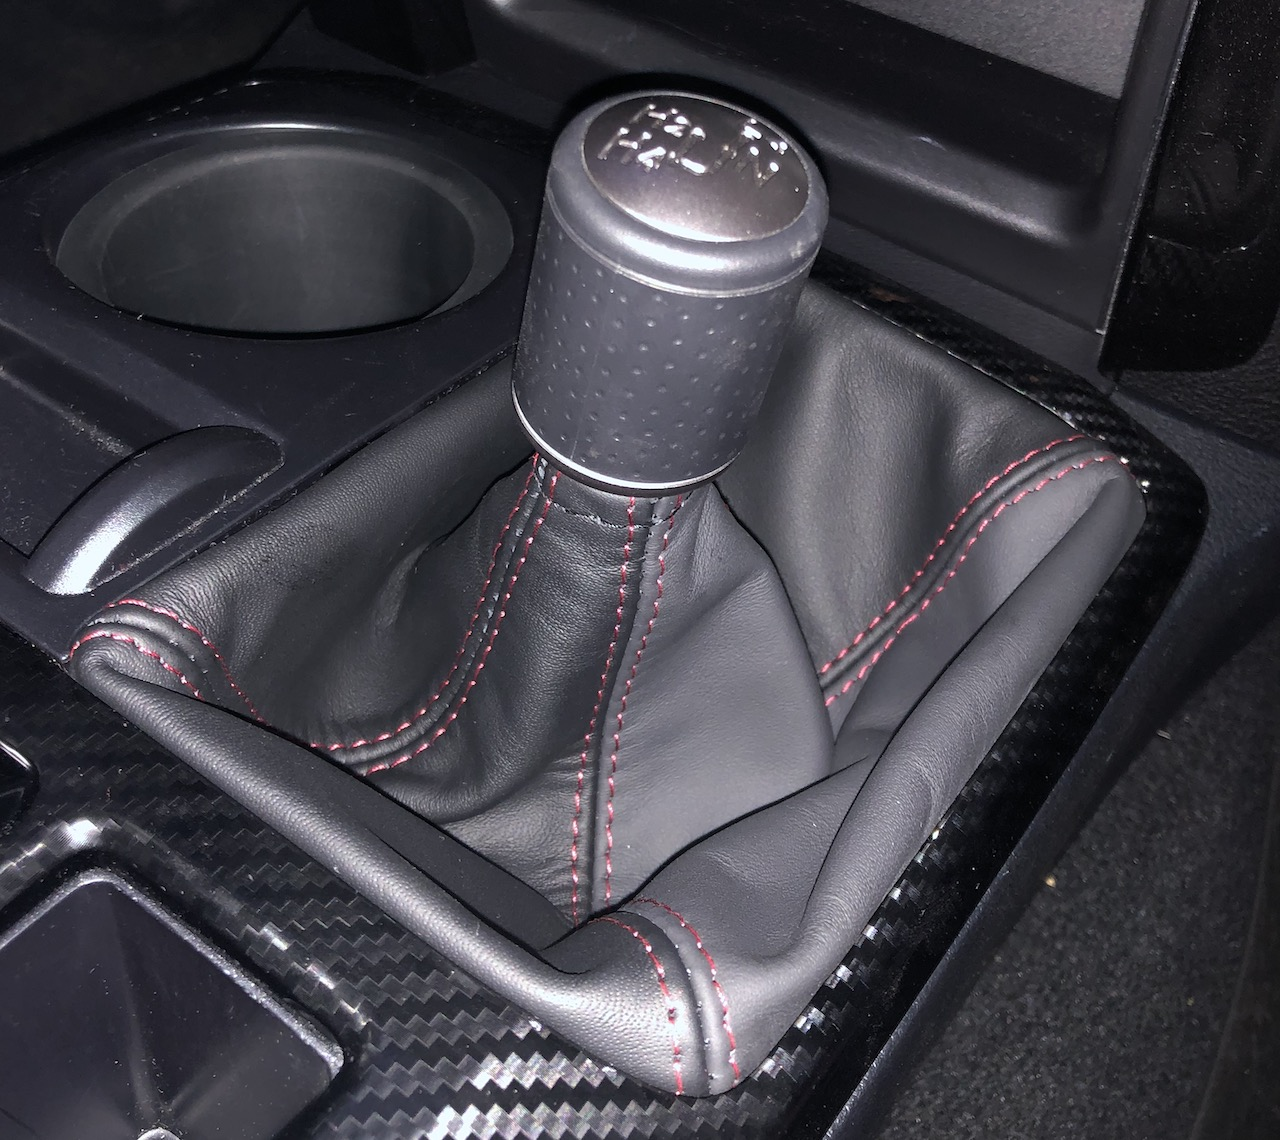 BLACK STITCHING REAL LEATHER MANUAL SHIFT BOOT FITS INFINITI G35 COUPE 03-07